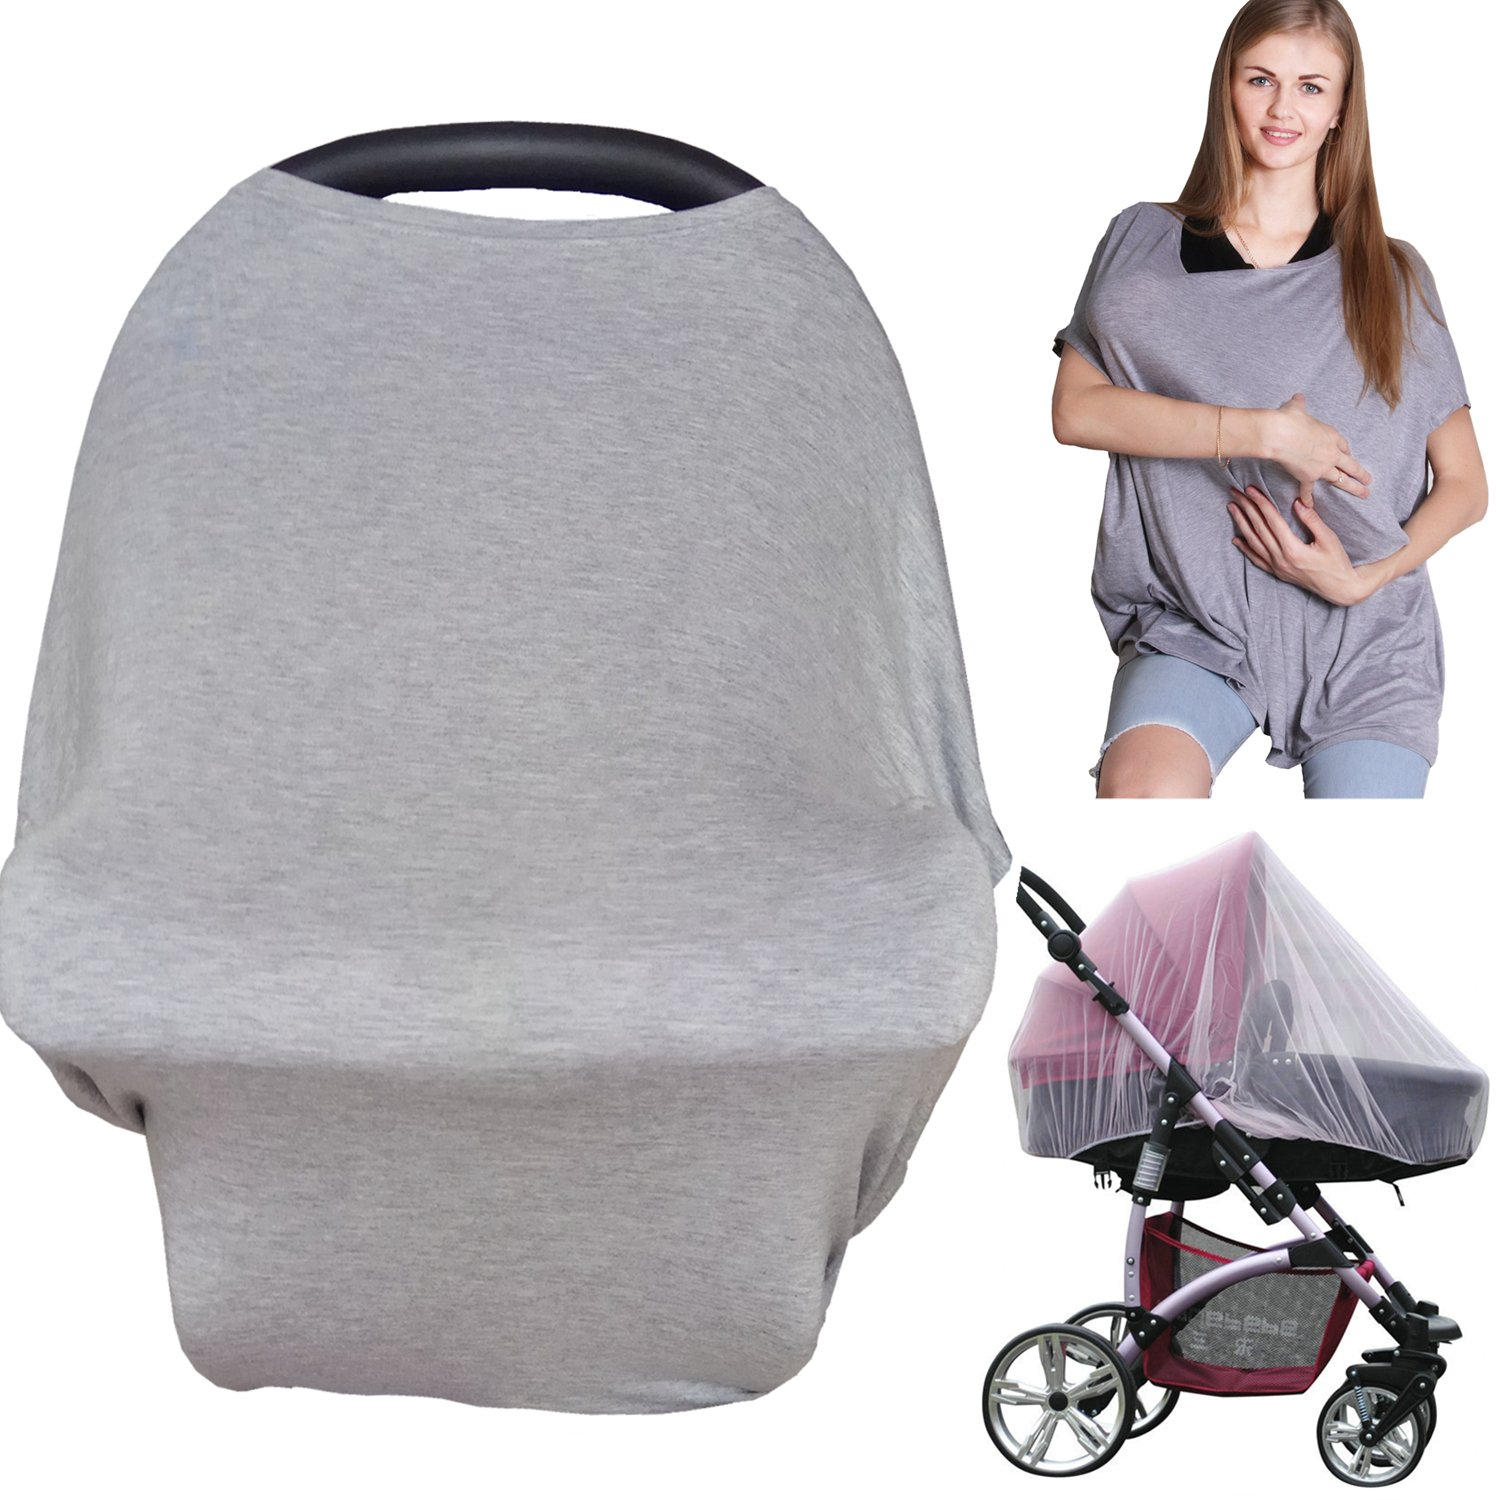 Baby Car Seat Cover Nursing Cover –Breastfeeding Cover, Baby Car seat Canopy for Girls and Boys USA FINE QUALITY